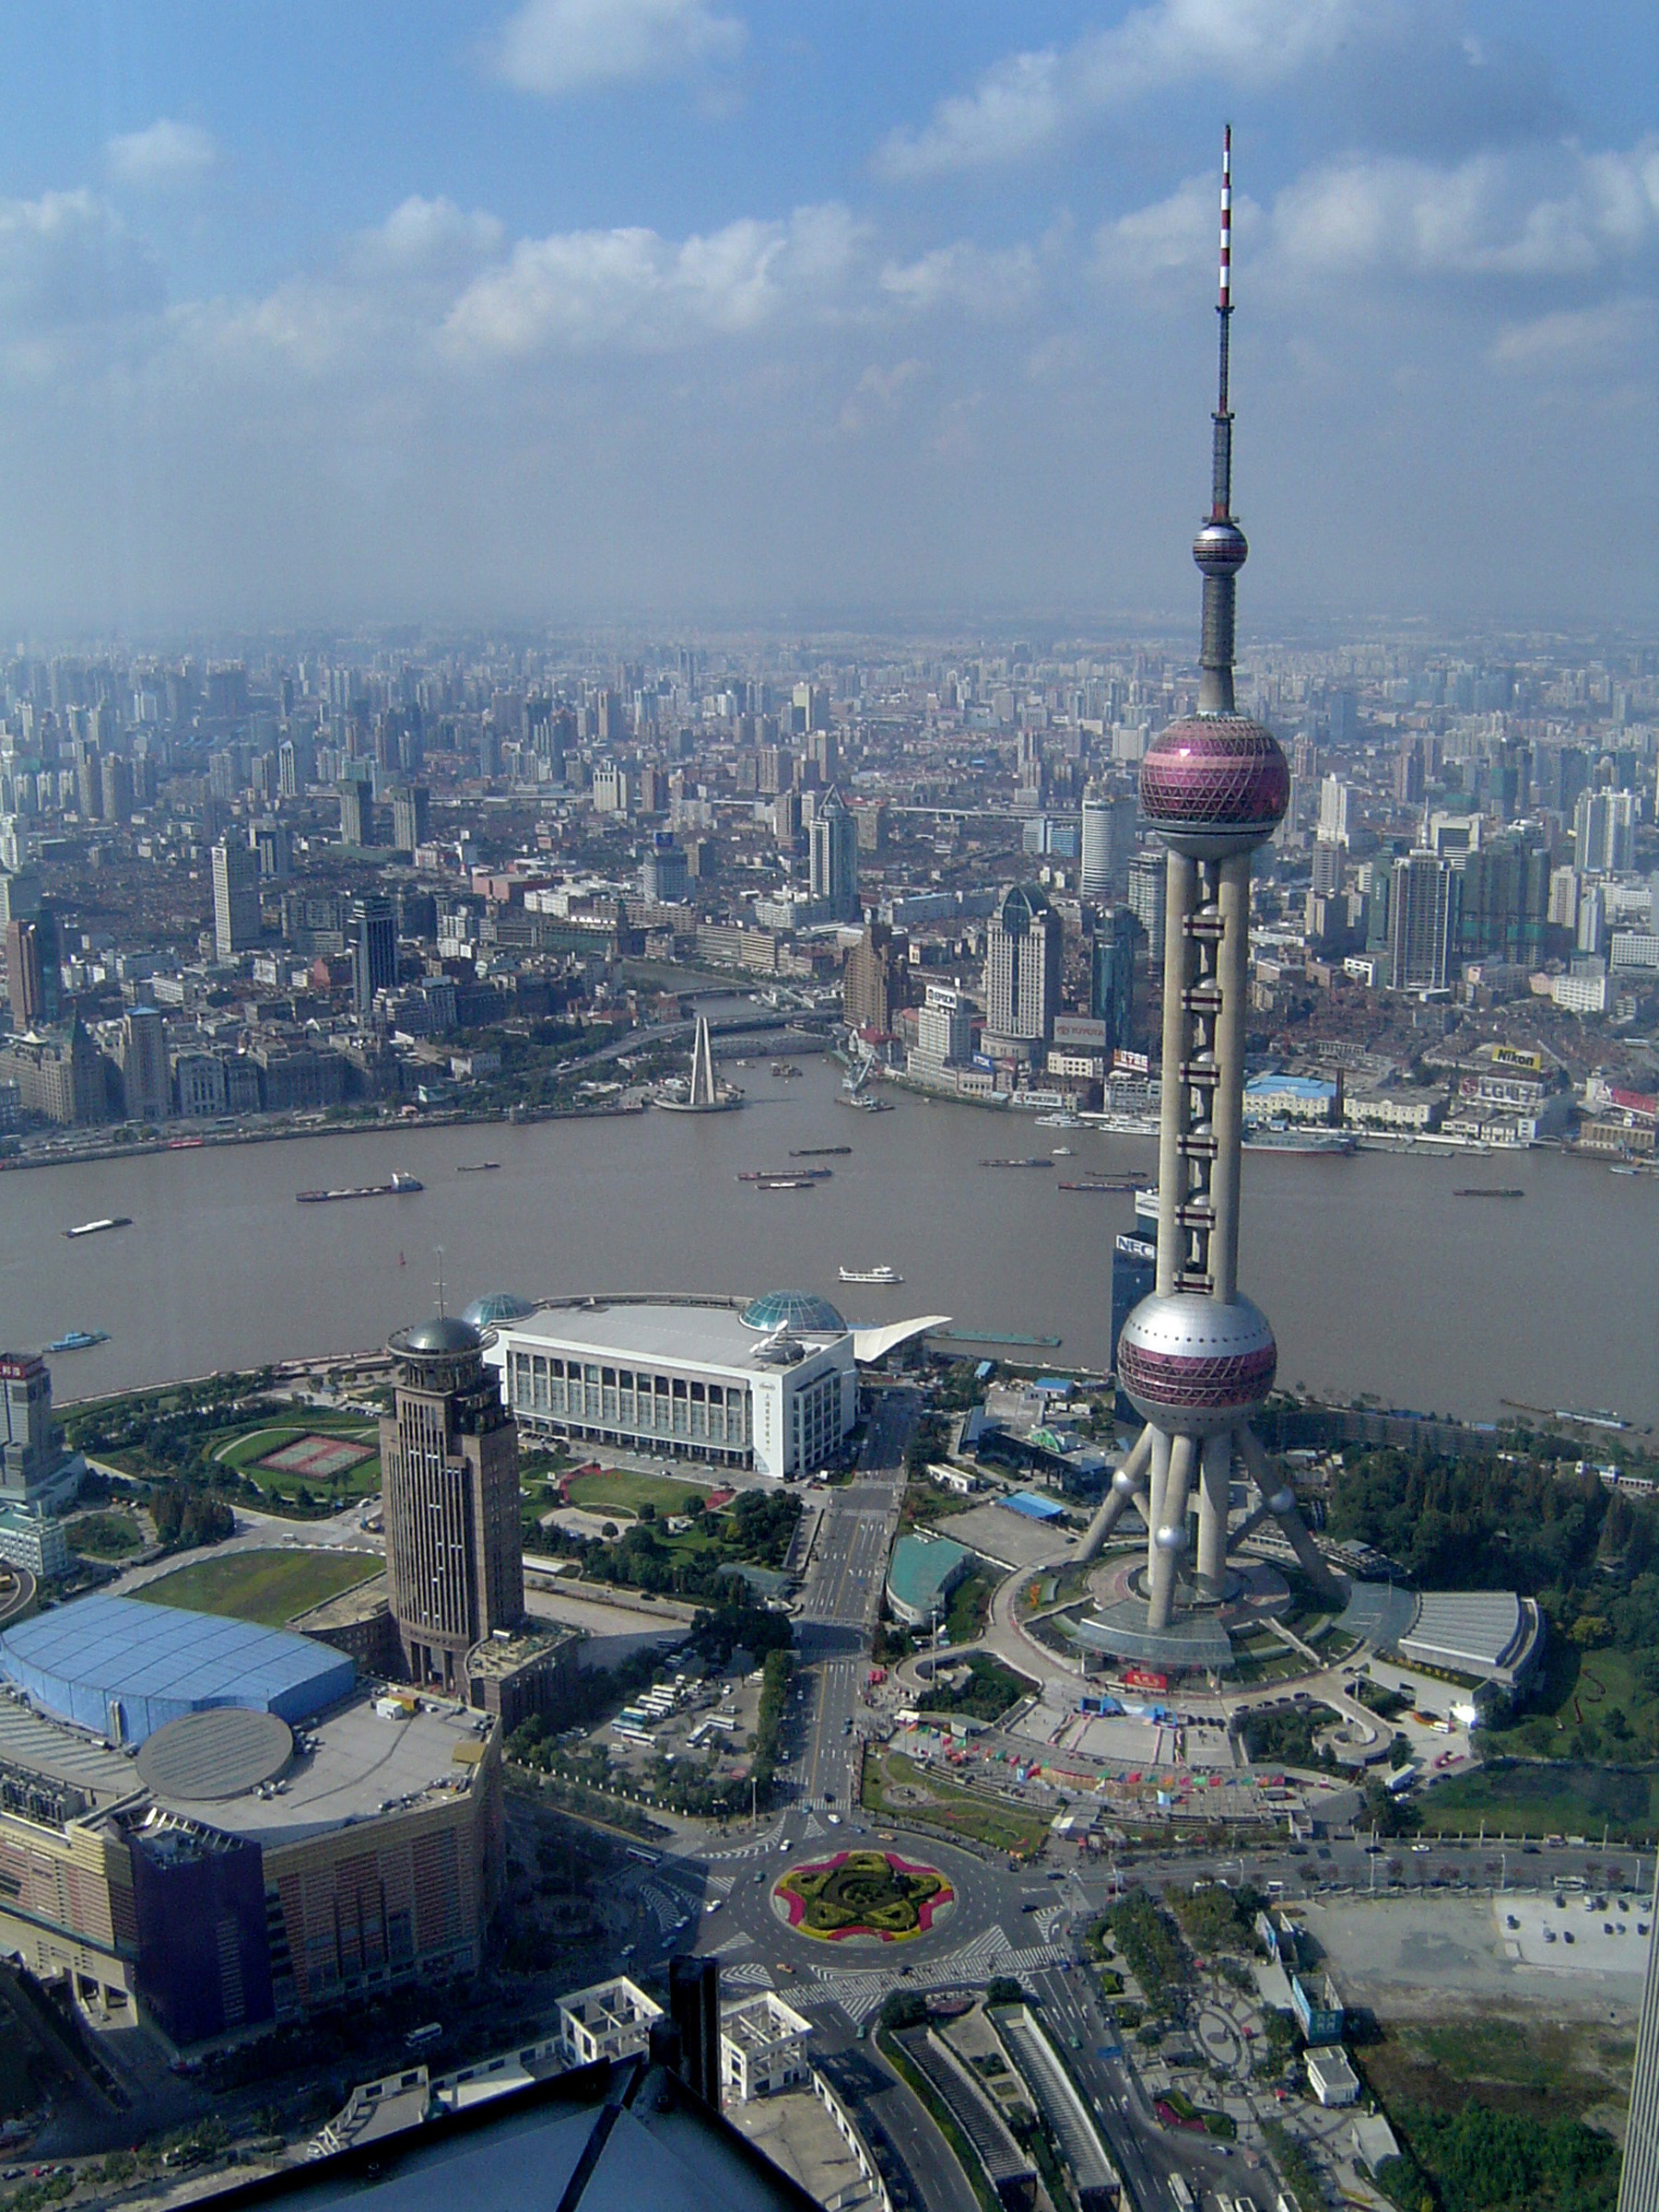 Famous Architectural Oriental Pearl Tower at the City of China in Aerial View.